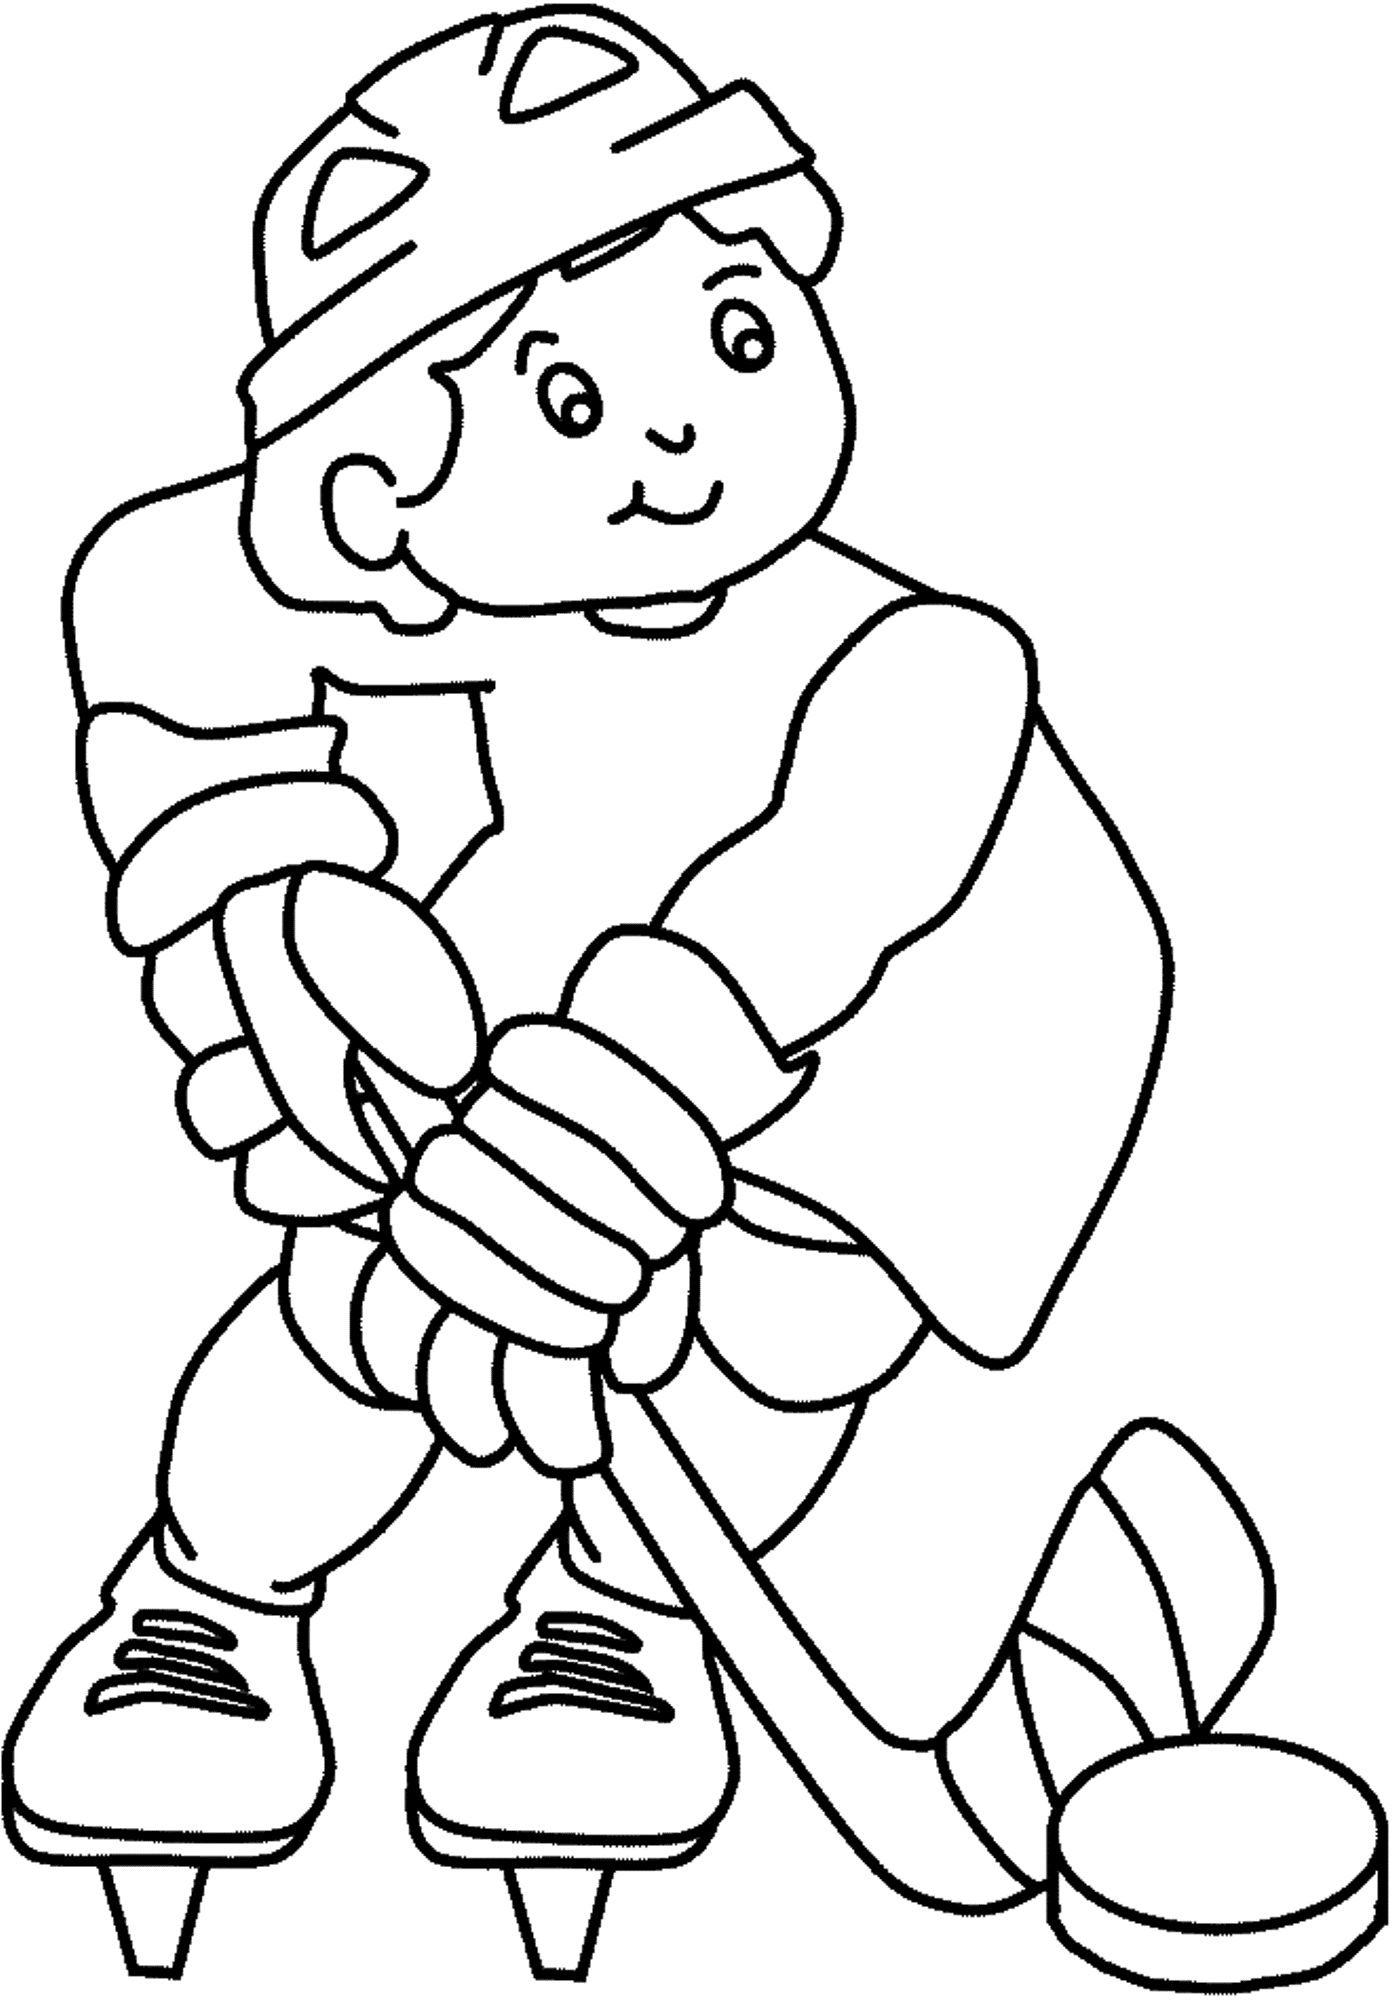 hockey coloring pages to print hockey player coloring pages to download and print for free hockey to pages coloring print